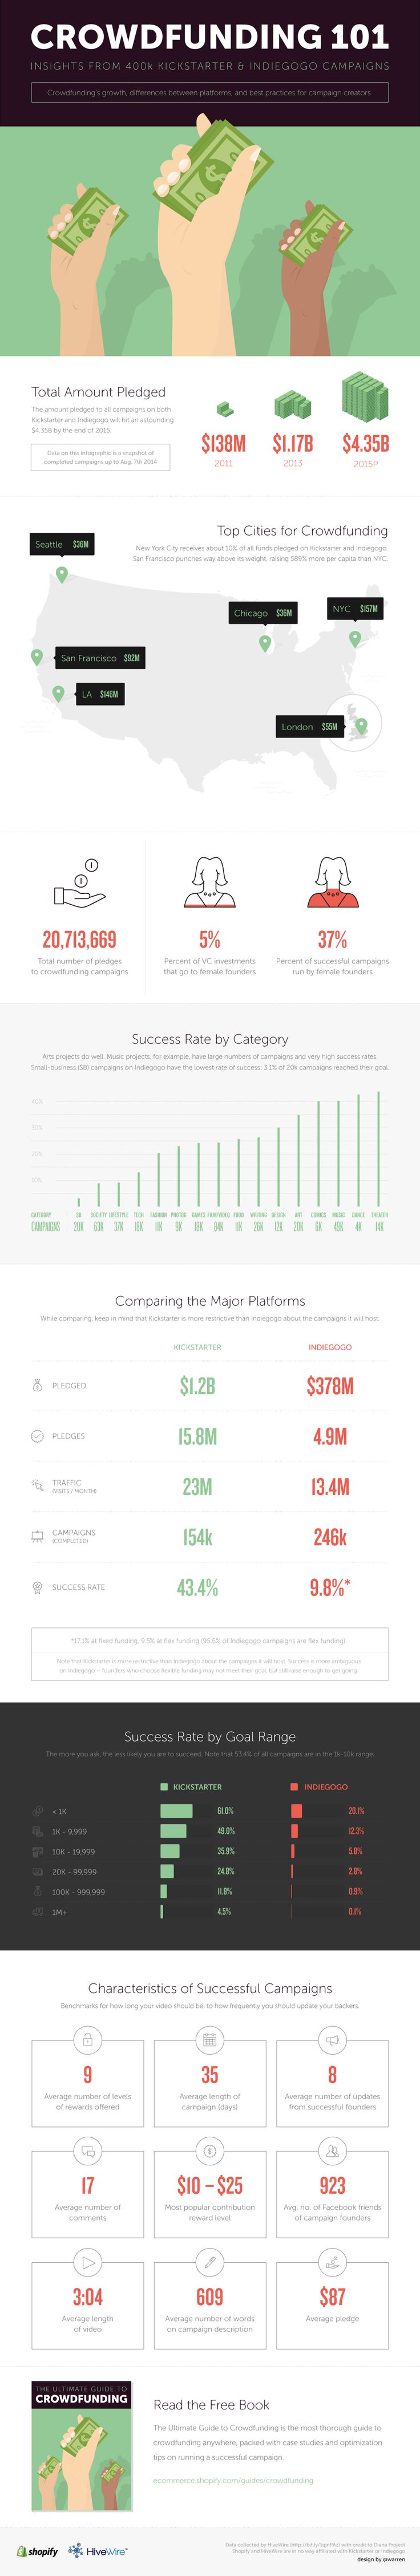 Use this infographic to see best practices for successful creators and the growth of crowdfunding. Compare the differences between the two biggest crowdfunding platforms: Kickstarter and Indiegogo.